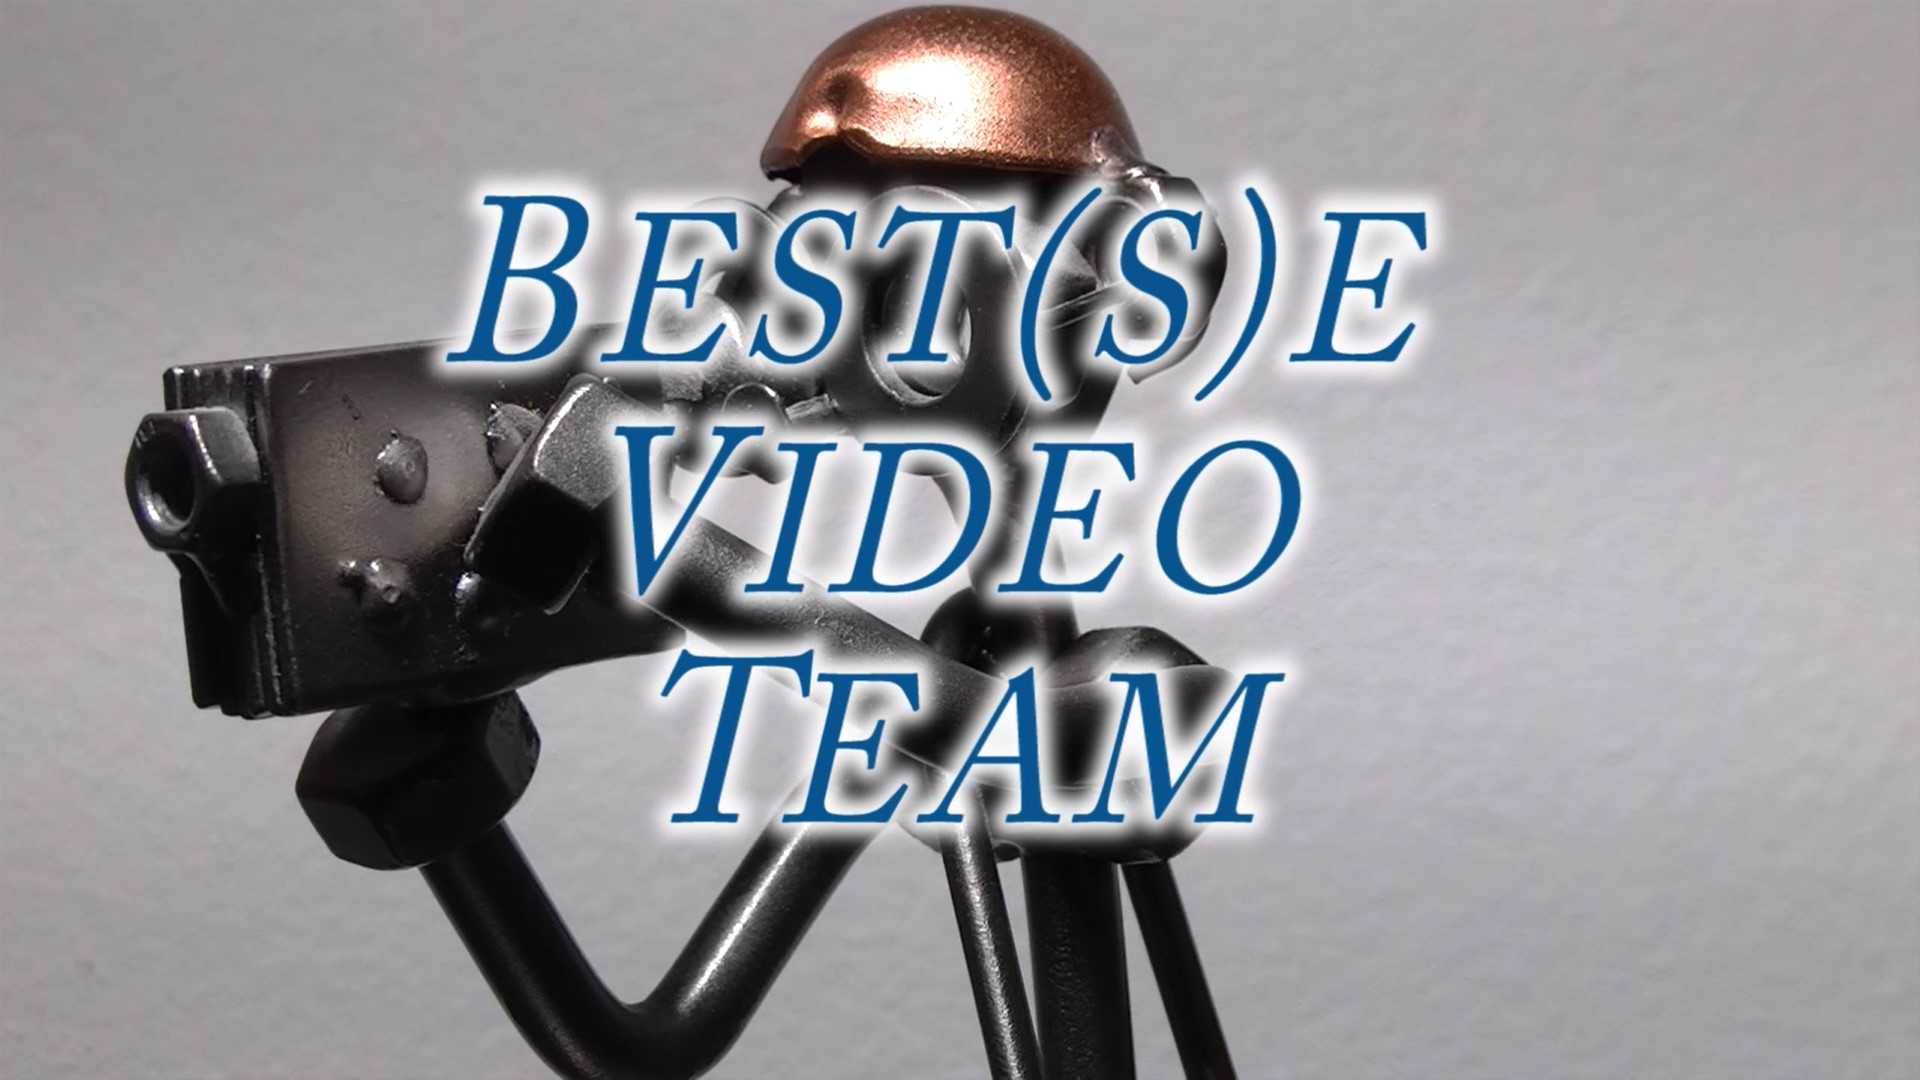 BVT Best(s)e Video Team promo